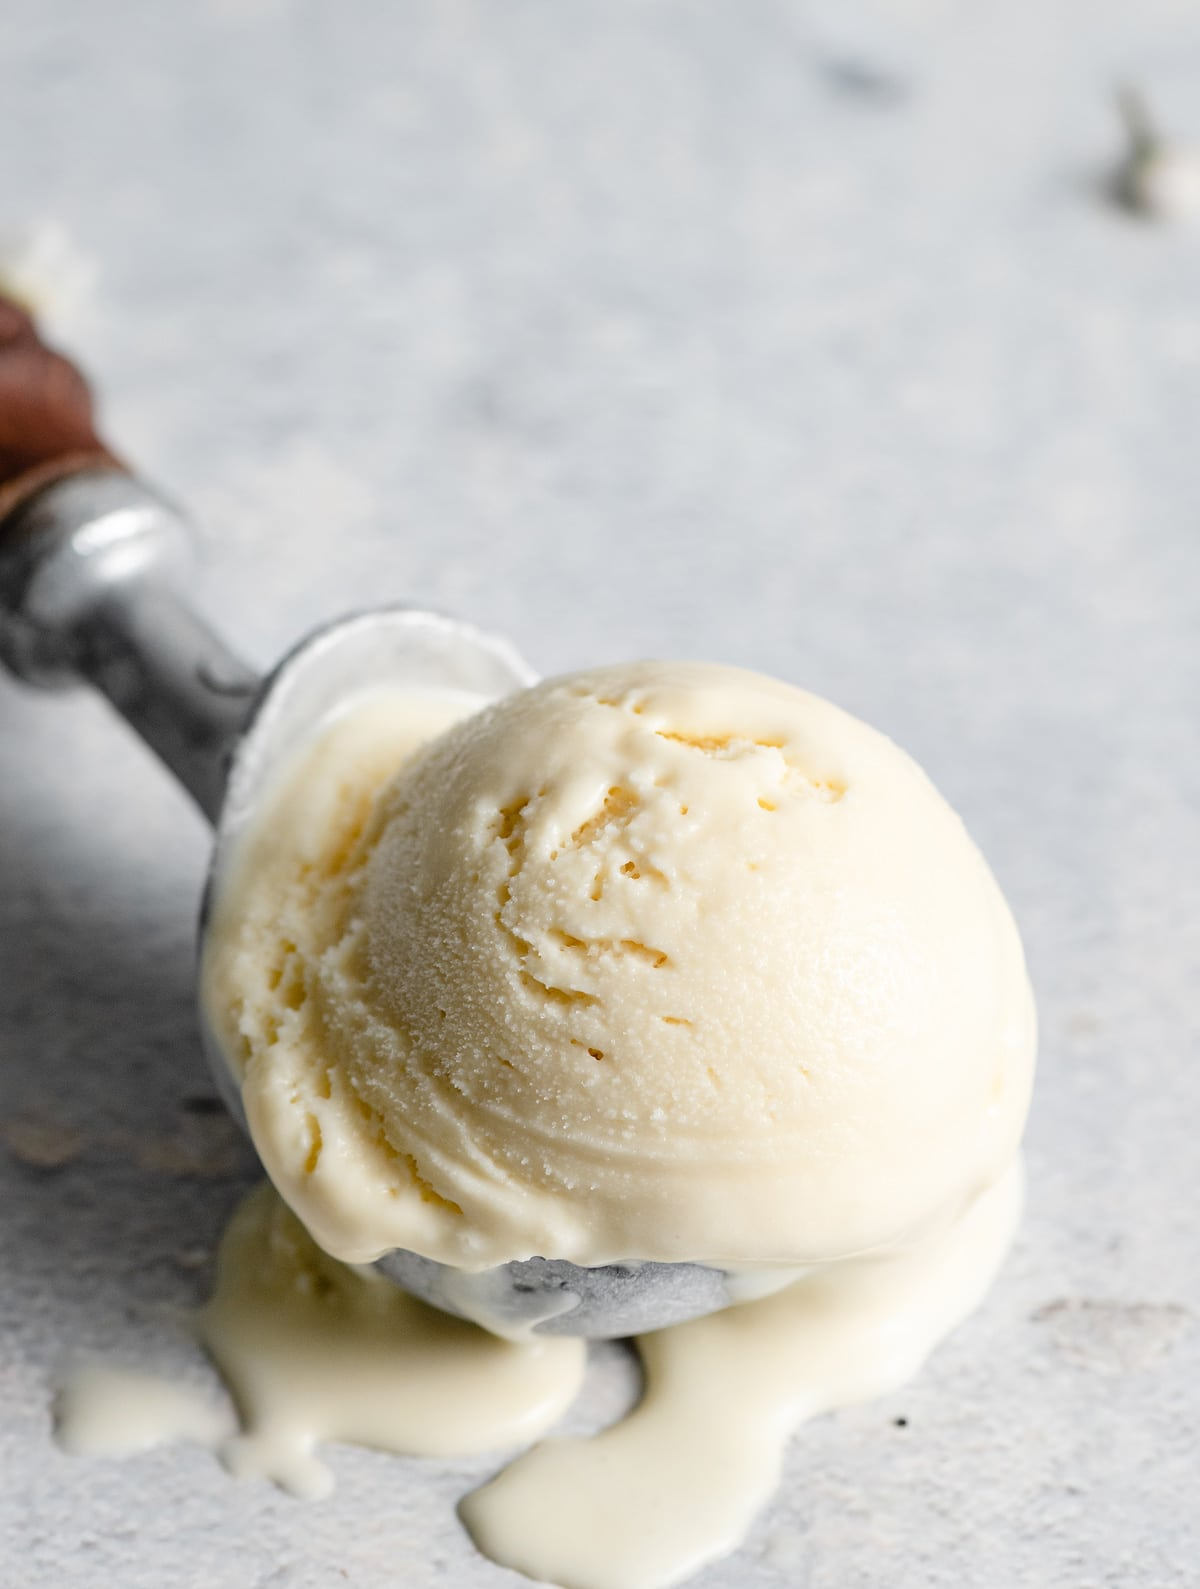 Scoop of homemade vanilla ice cream.